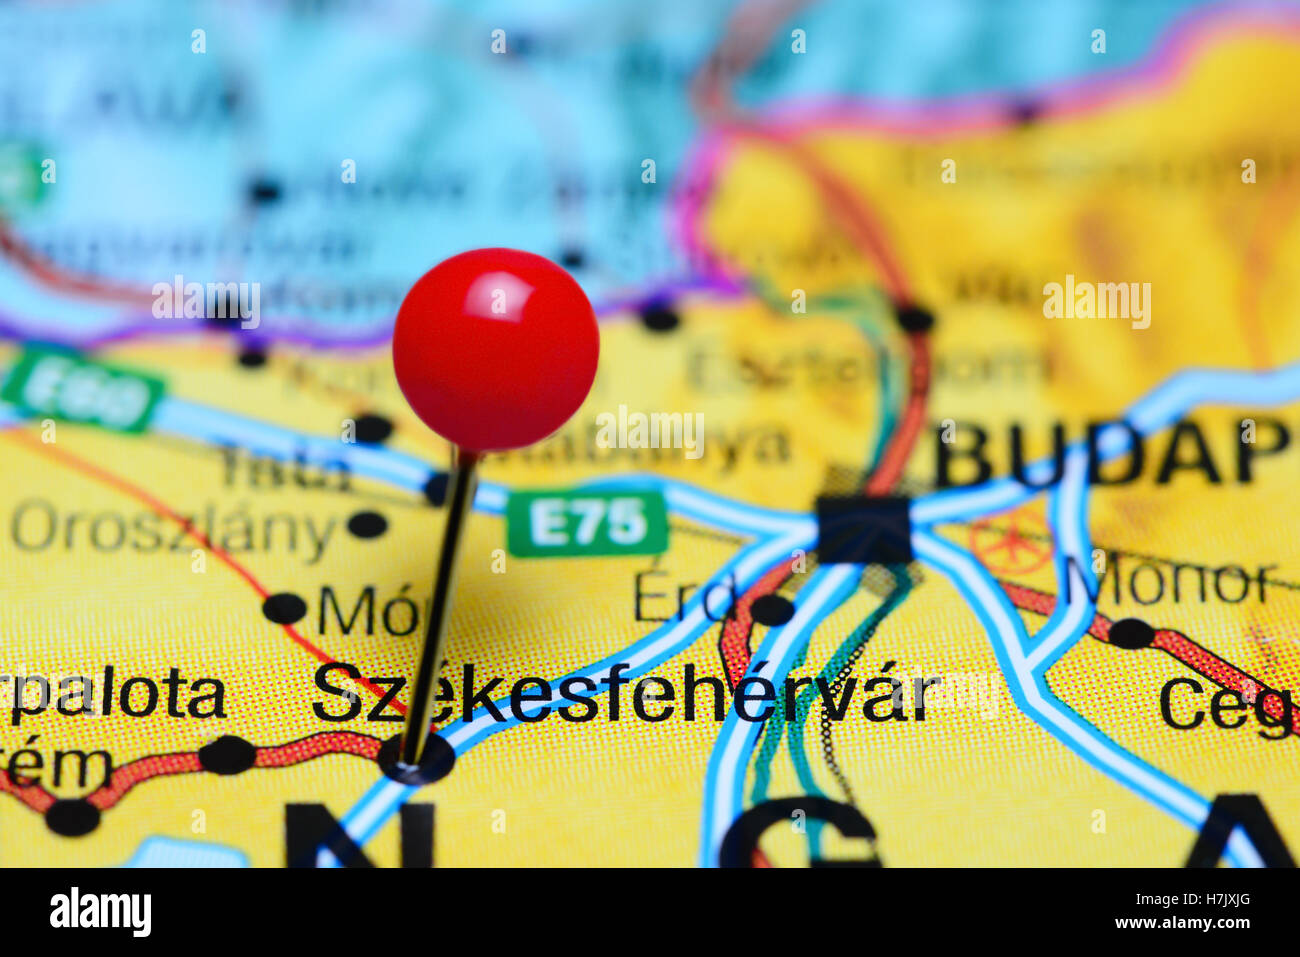 Szekesfehervar pinned on a map of Hungary Stock Photo 125191208 Alamy